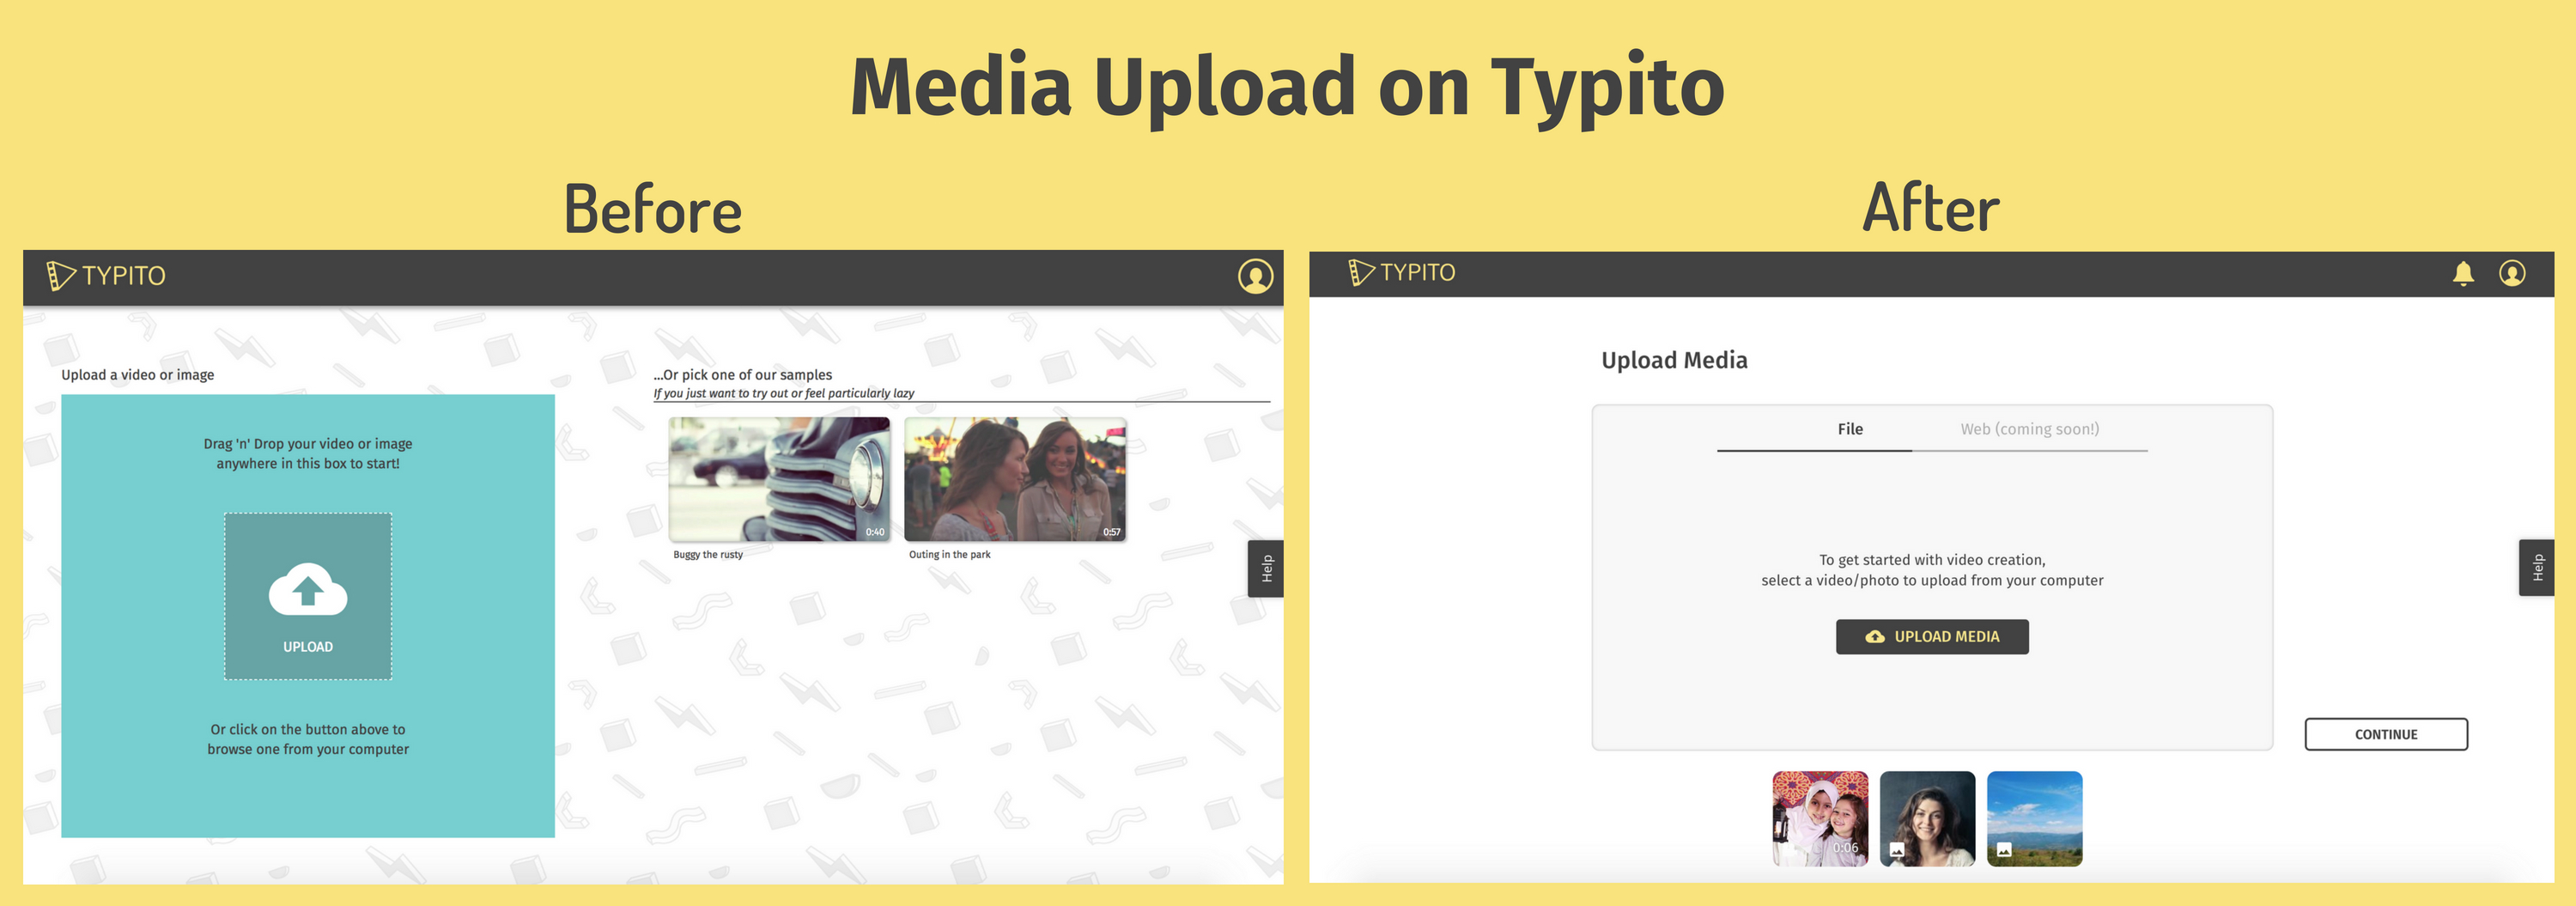 Media upload experience on Typito